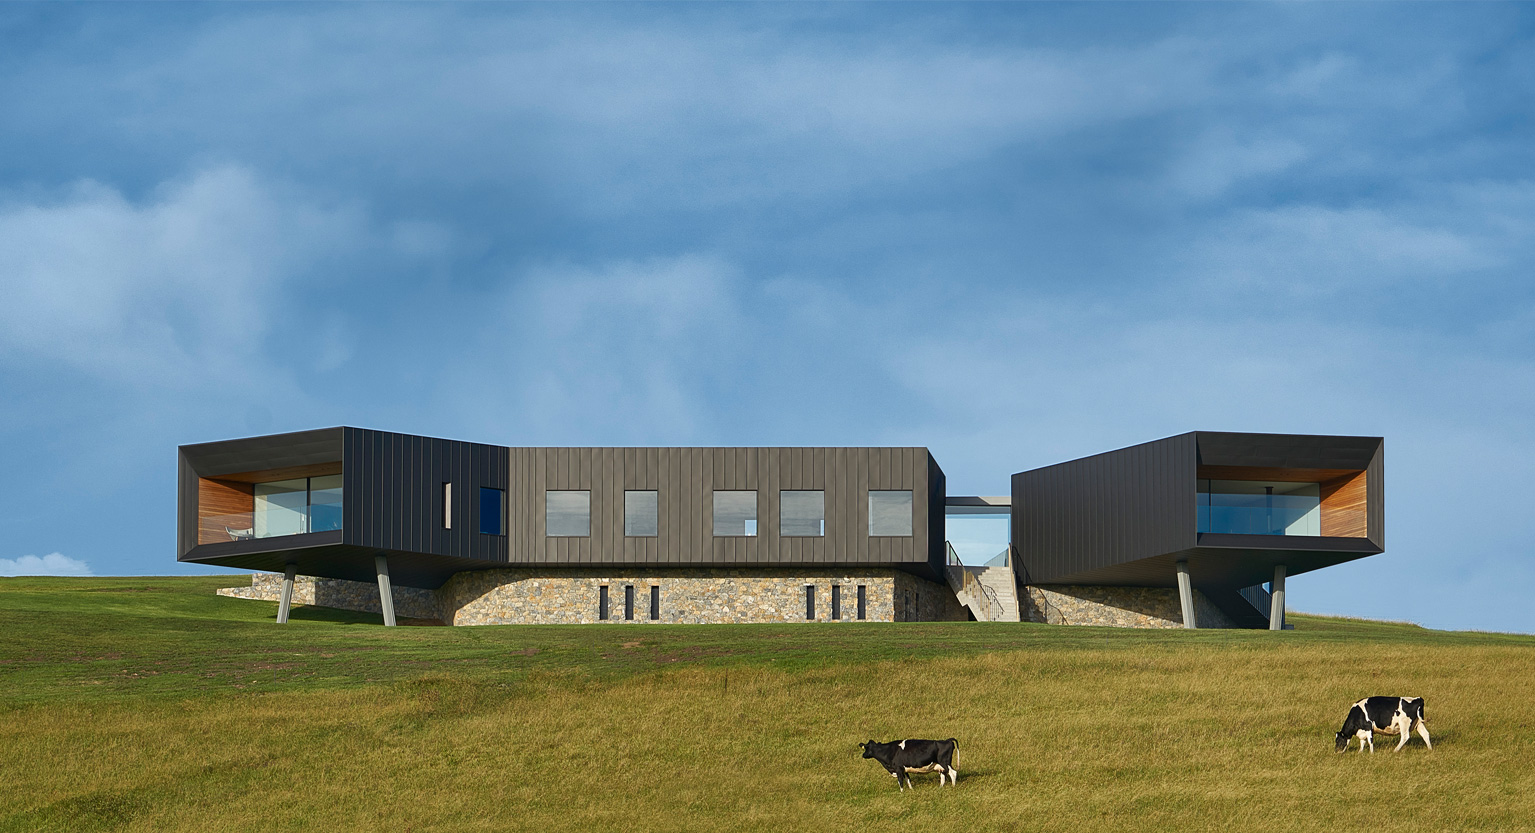 How Farm Buildings Inspired This Idyllic Australian Home From Atelier Andy Carson